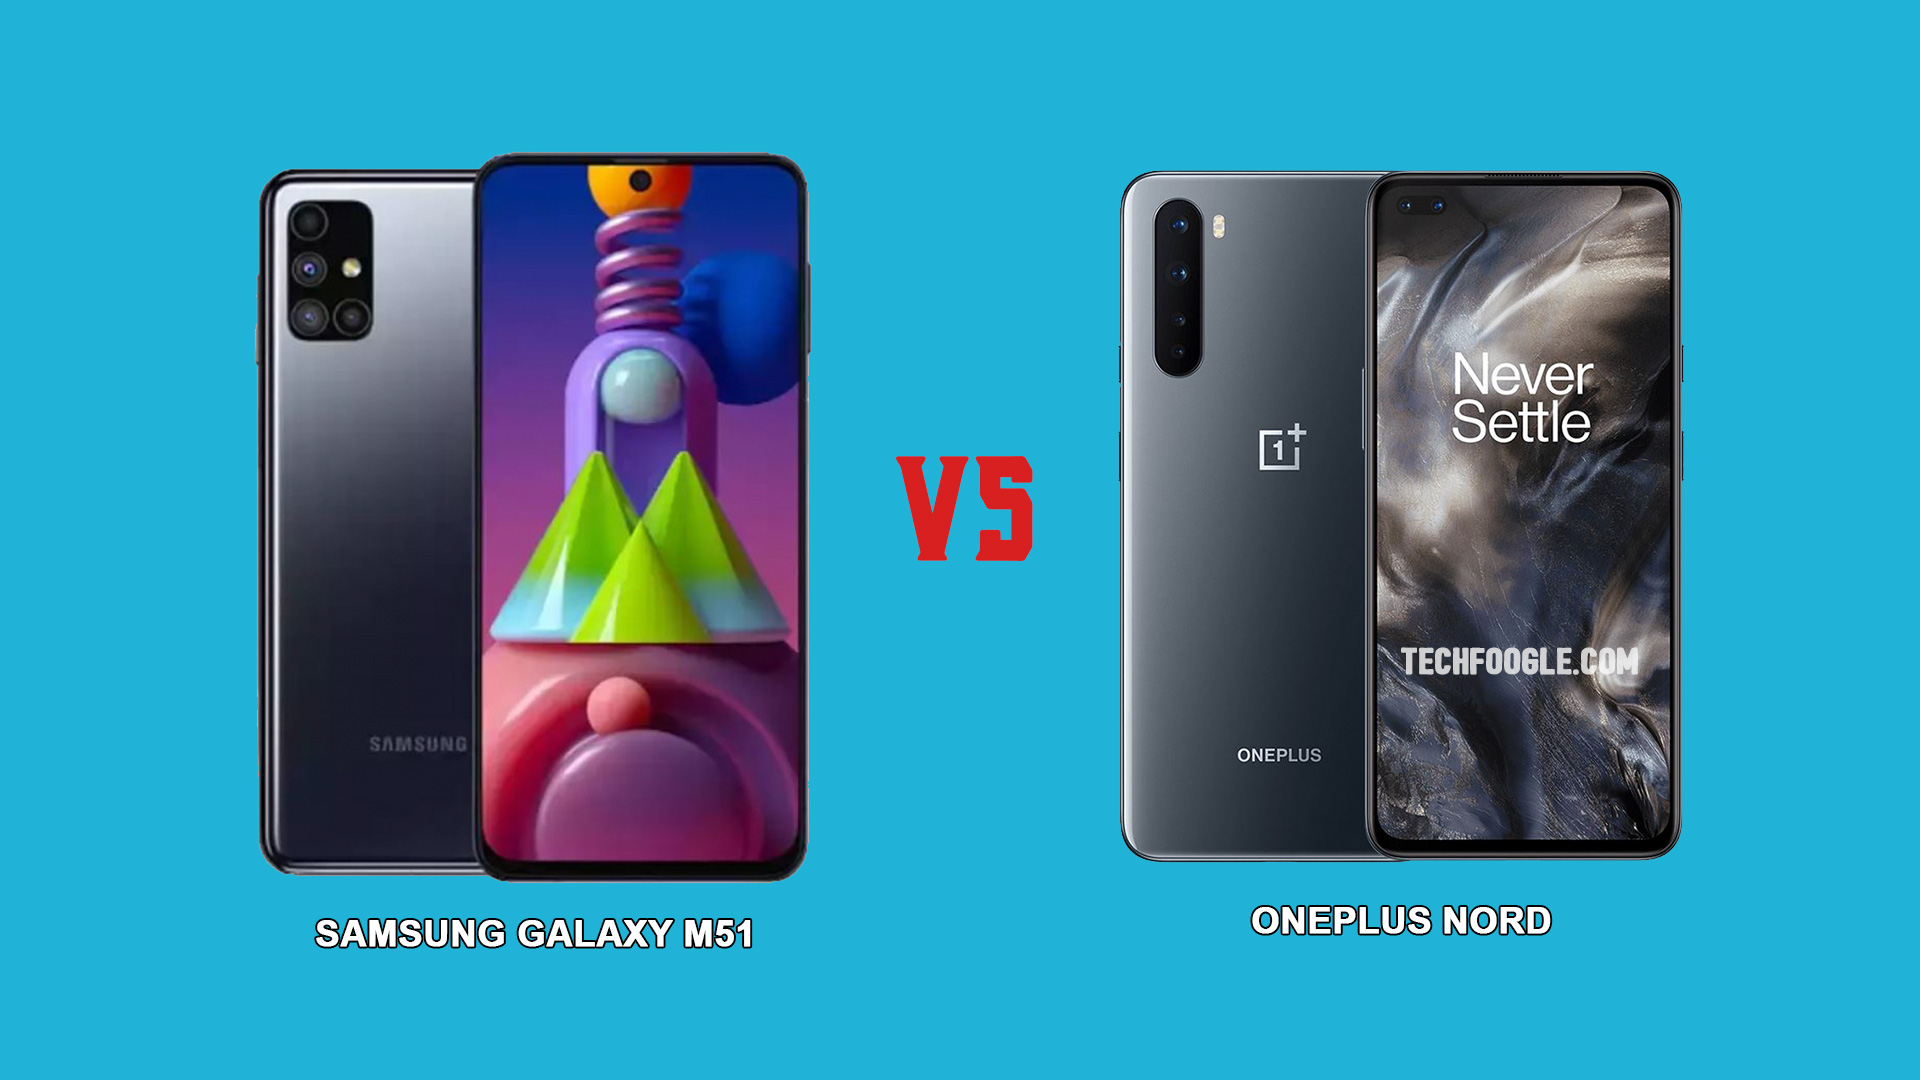 Samsung Galaxy M51 Vs Oneplus Nord Which Represents The Best Value Tech Foogle